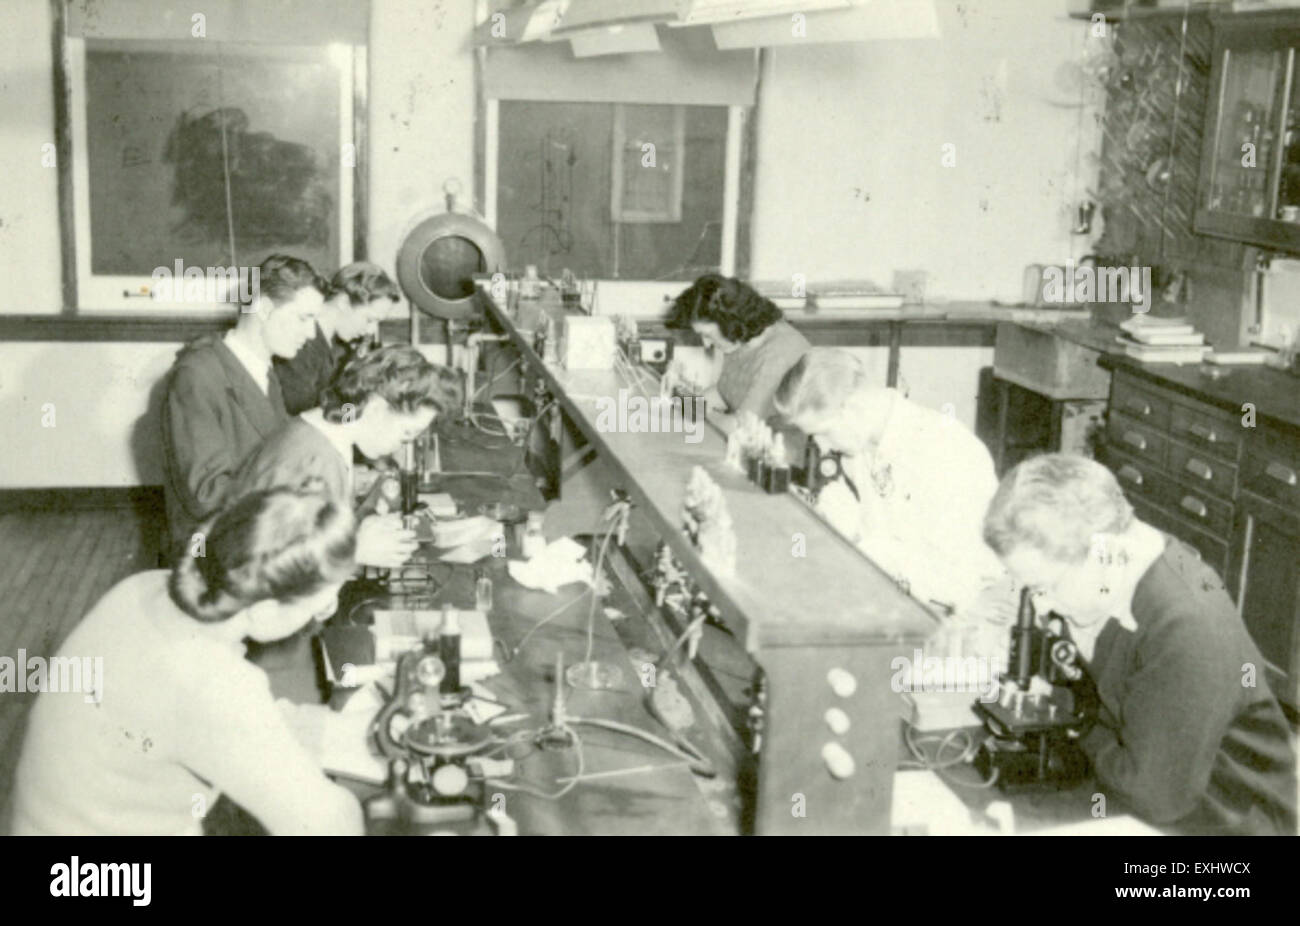 Bacteriology Lab, Goshen College - Stock Image